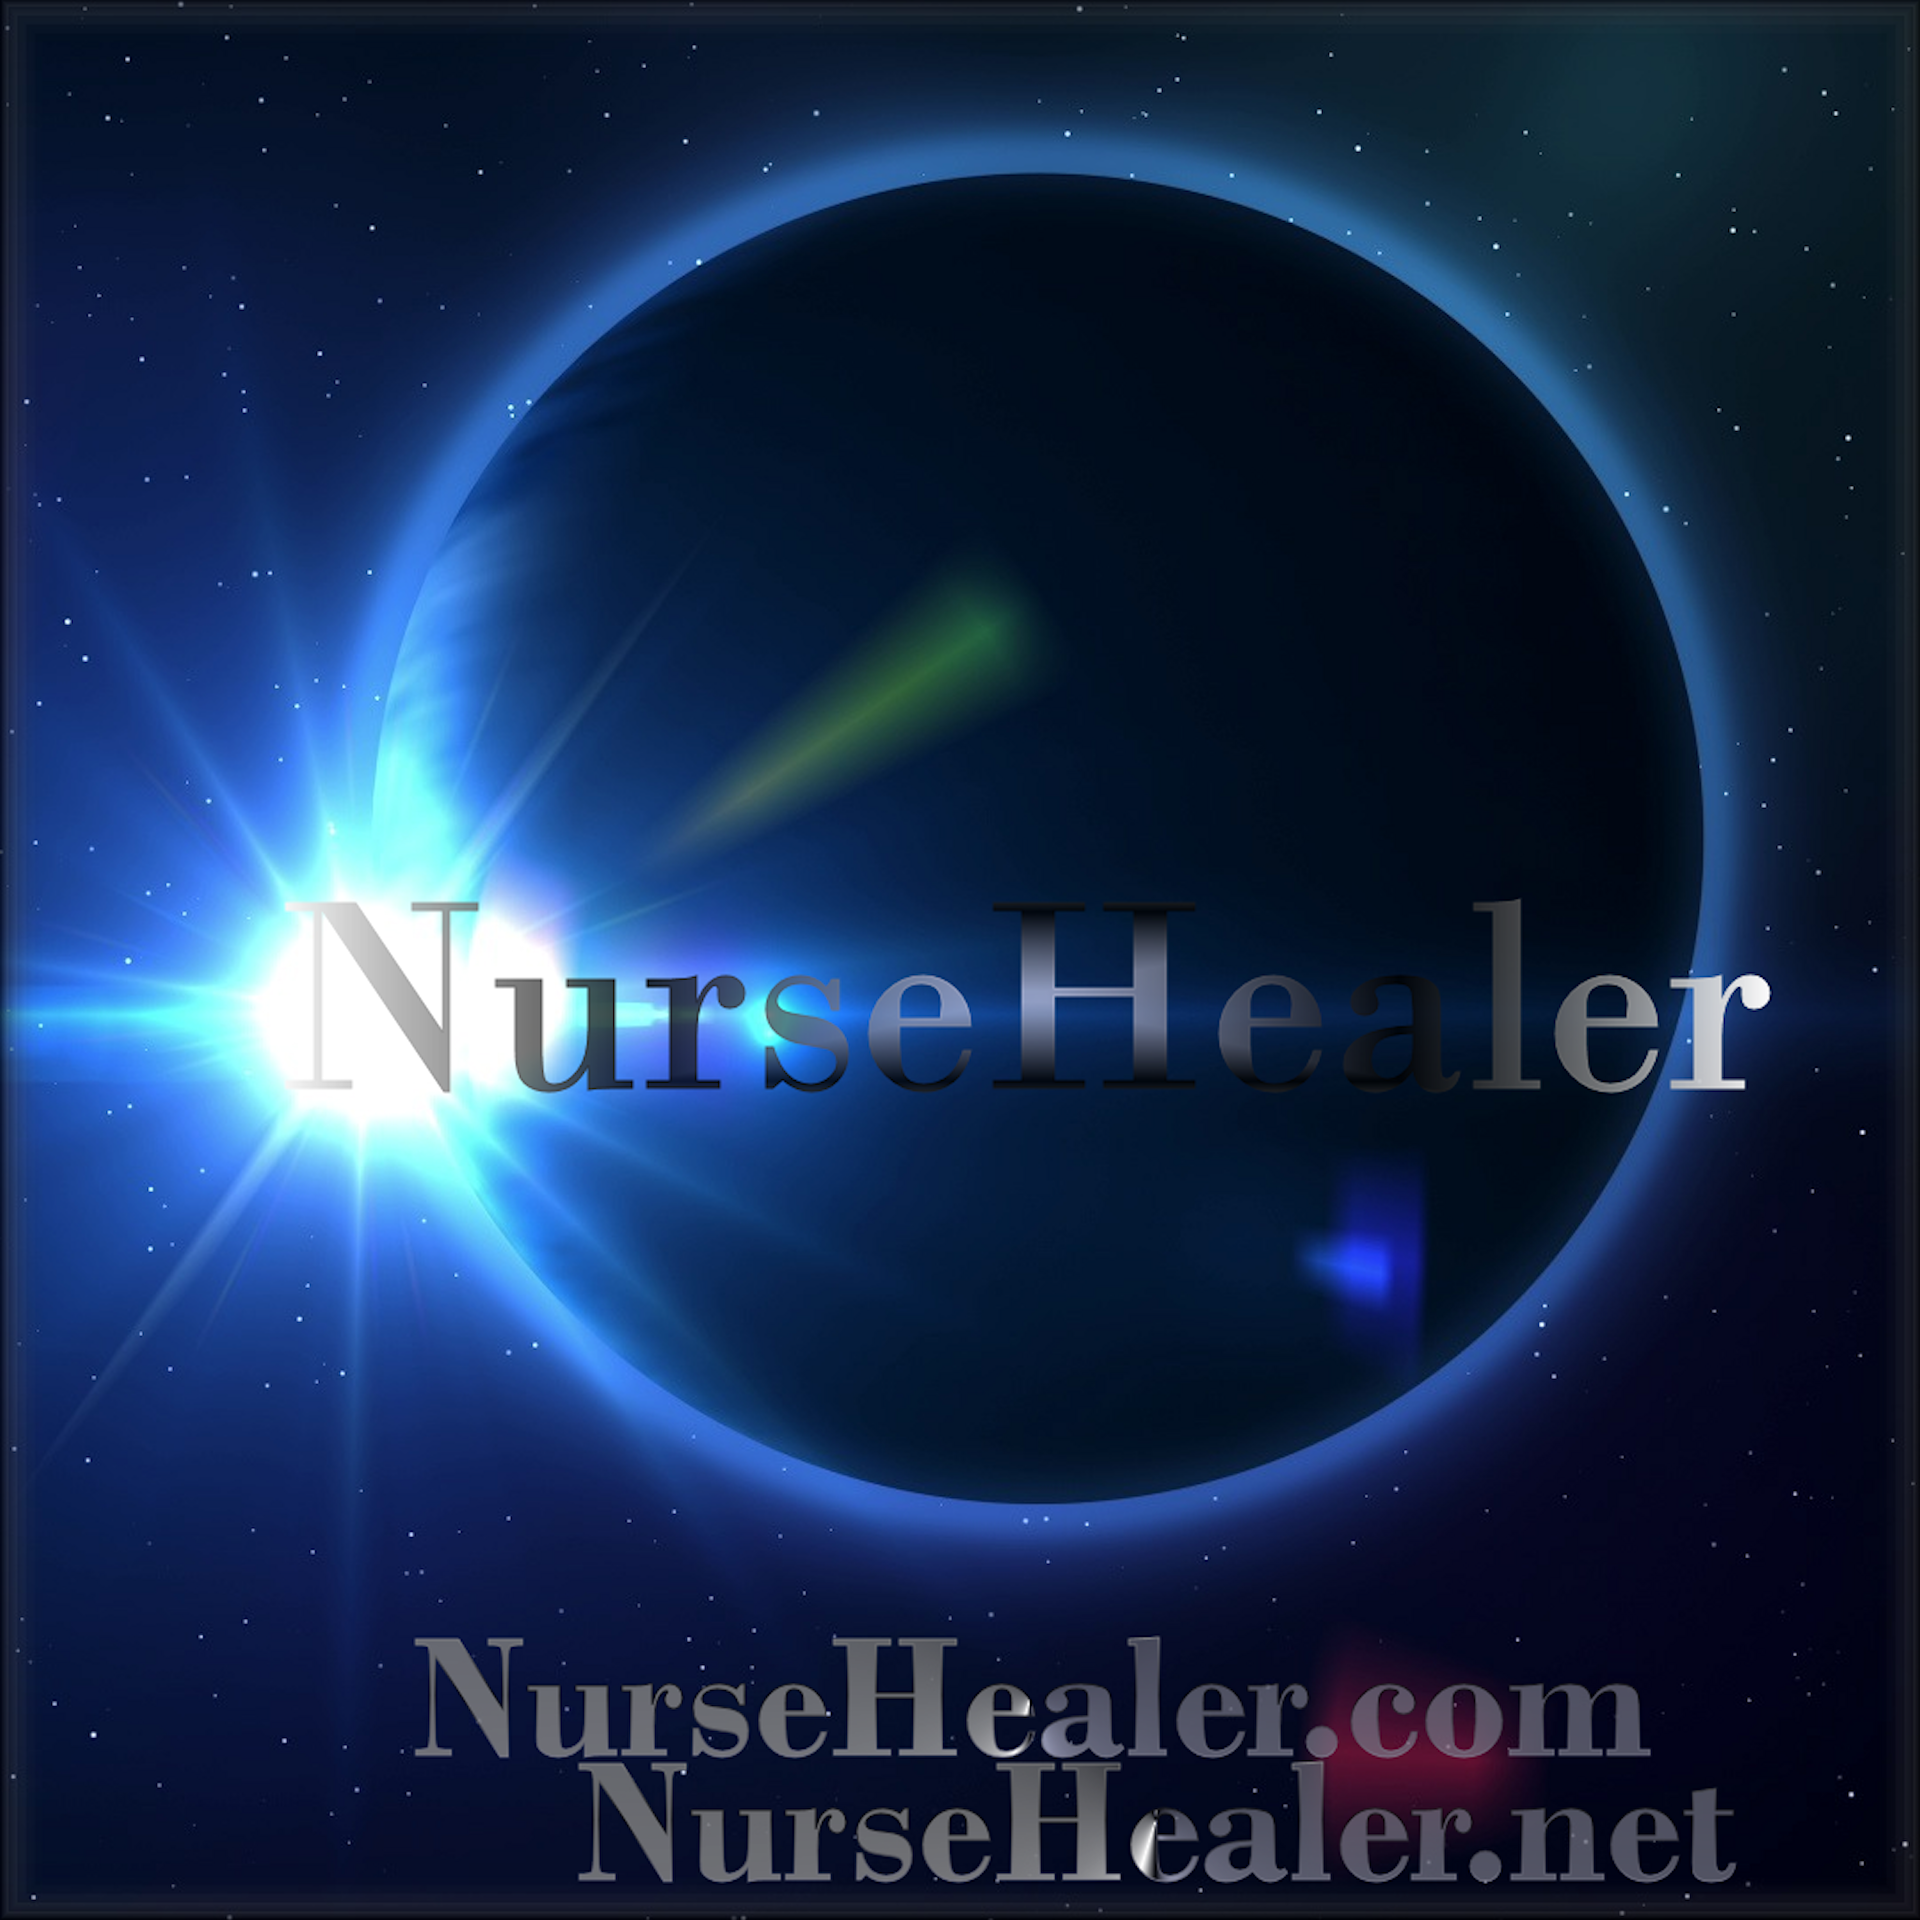 NurseHealer NurseHealer.com is dedicated to holistic healing, spirituality, preparedness, and the paranormal.